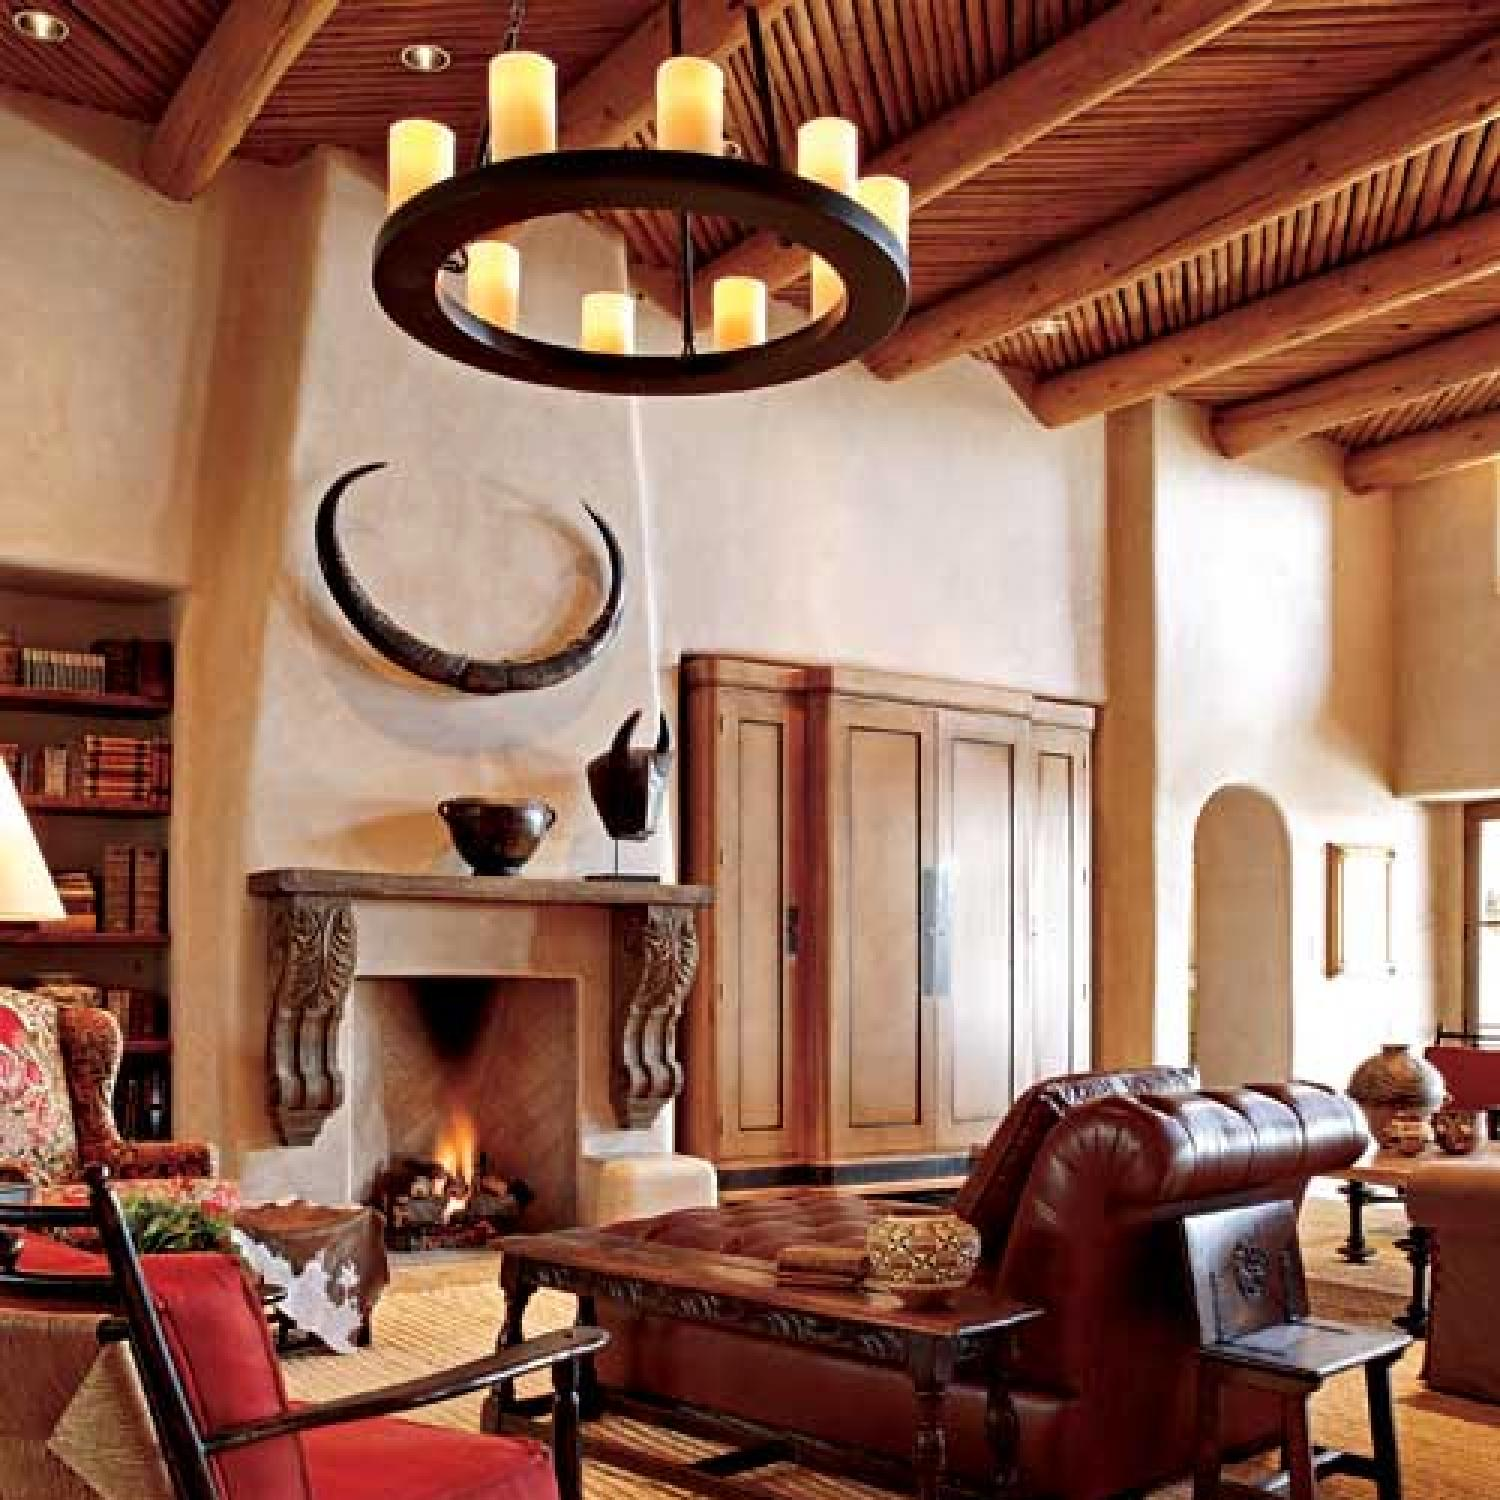 Home Interior Design Bedrooms: Pueblo-Style Home With Traditional Southwestern Design